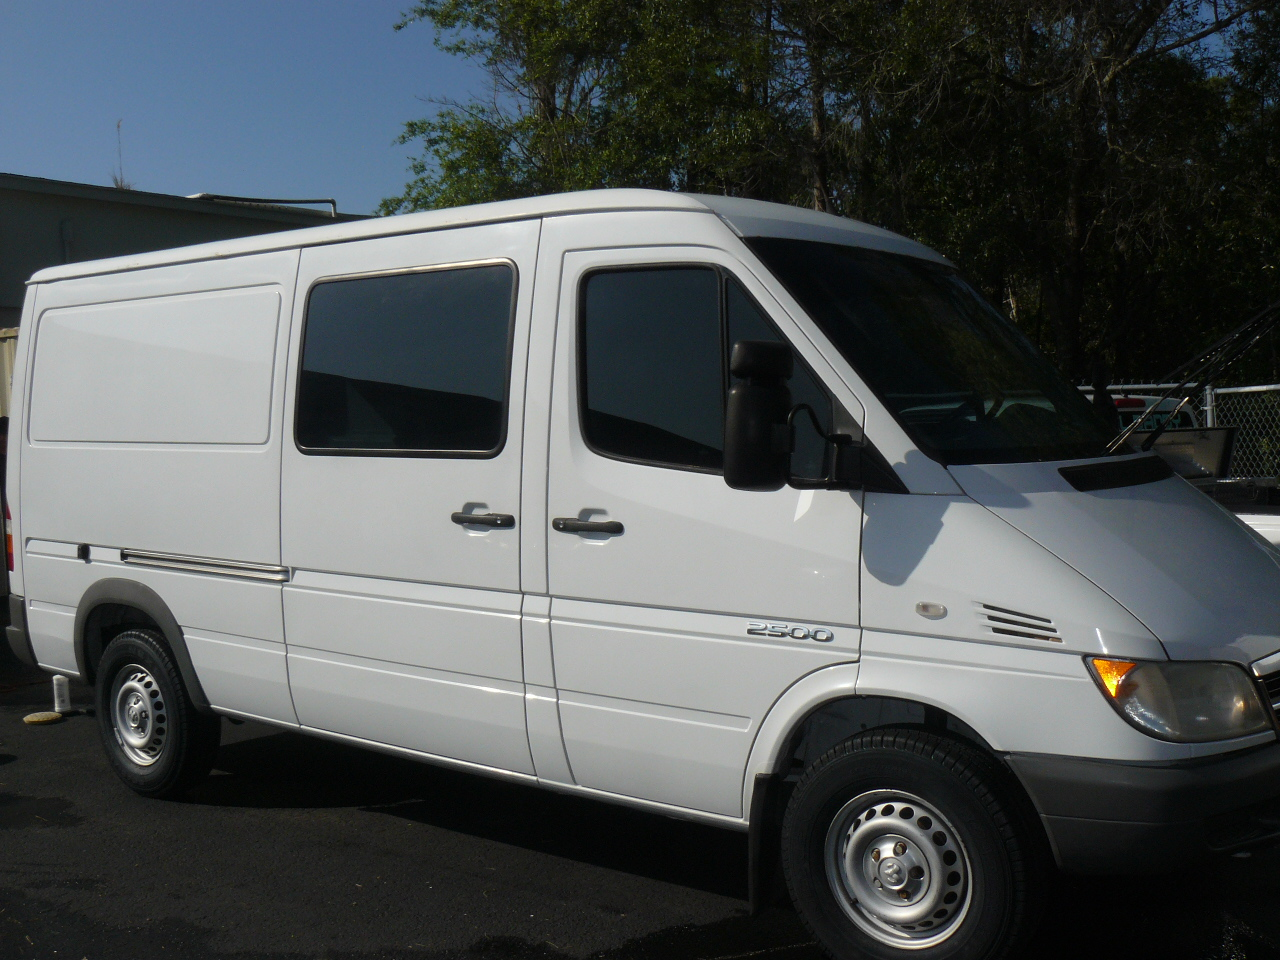 Van And Trailer Detailed In Oldsmar -> On Location